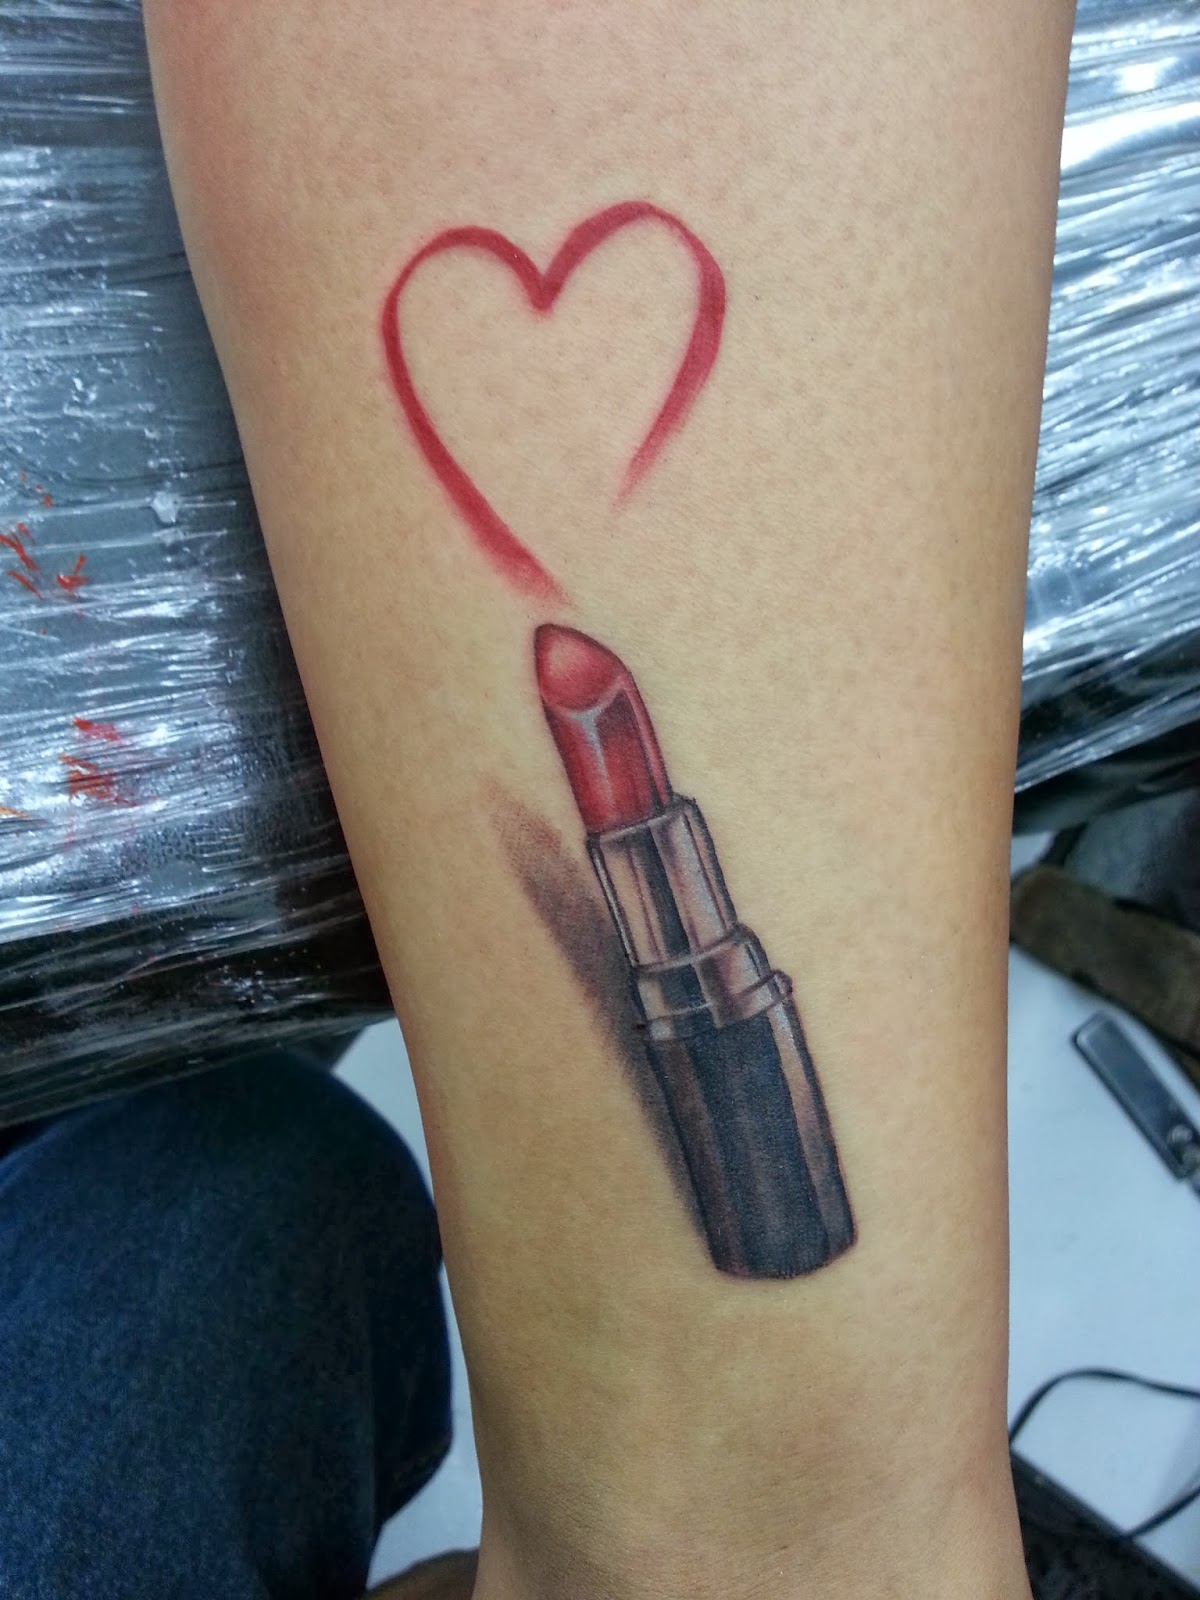 Mac Lipstick Tattoo